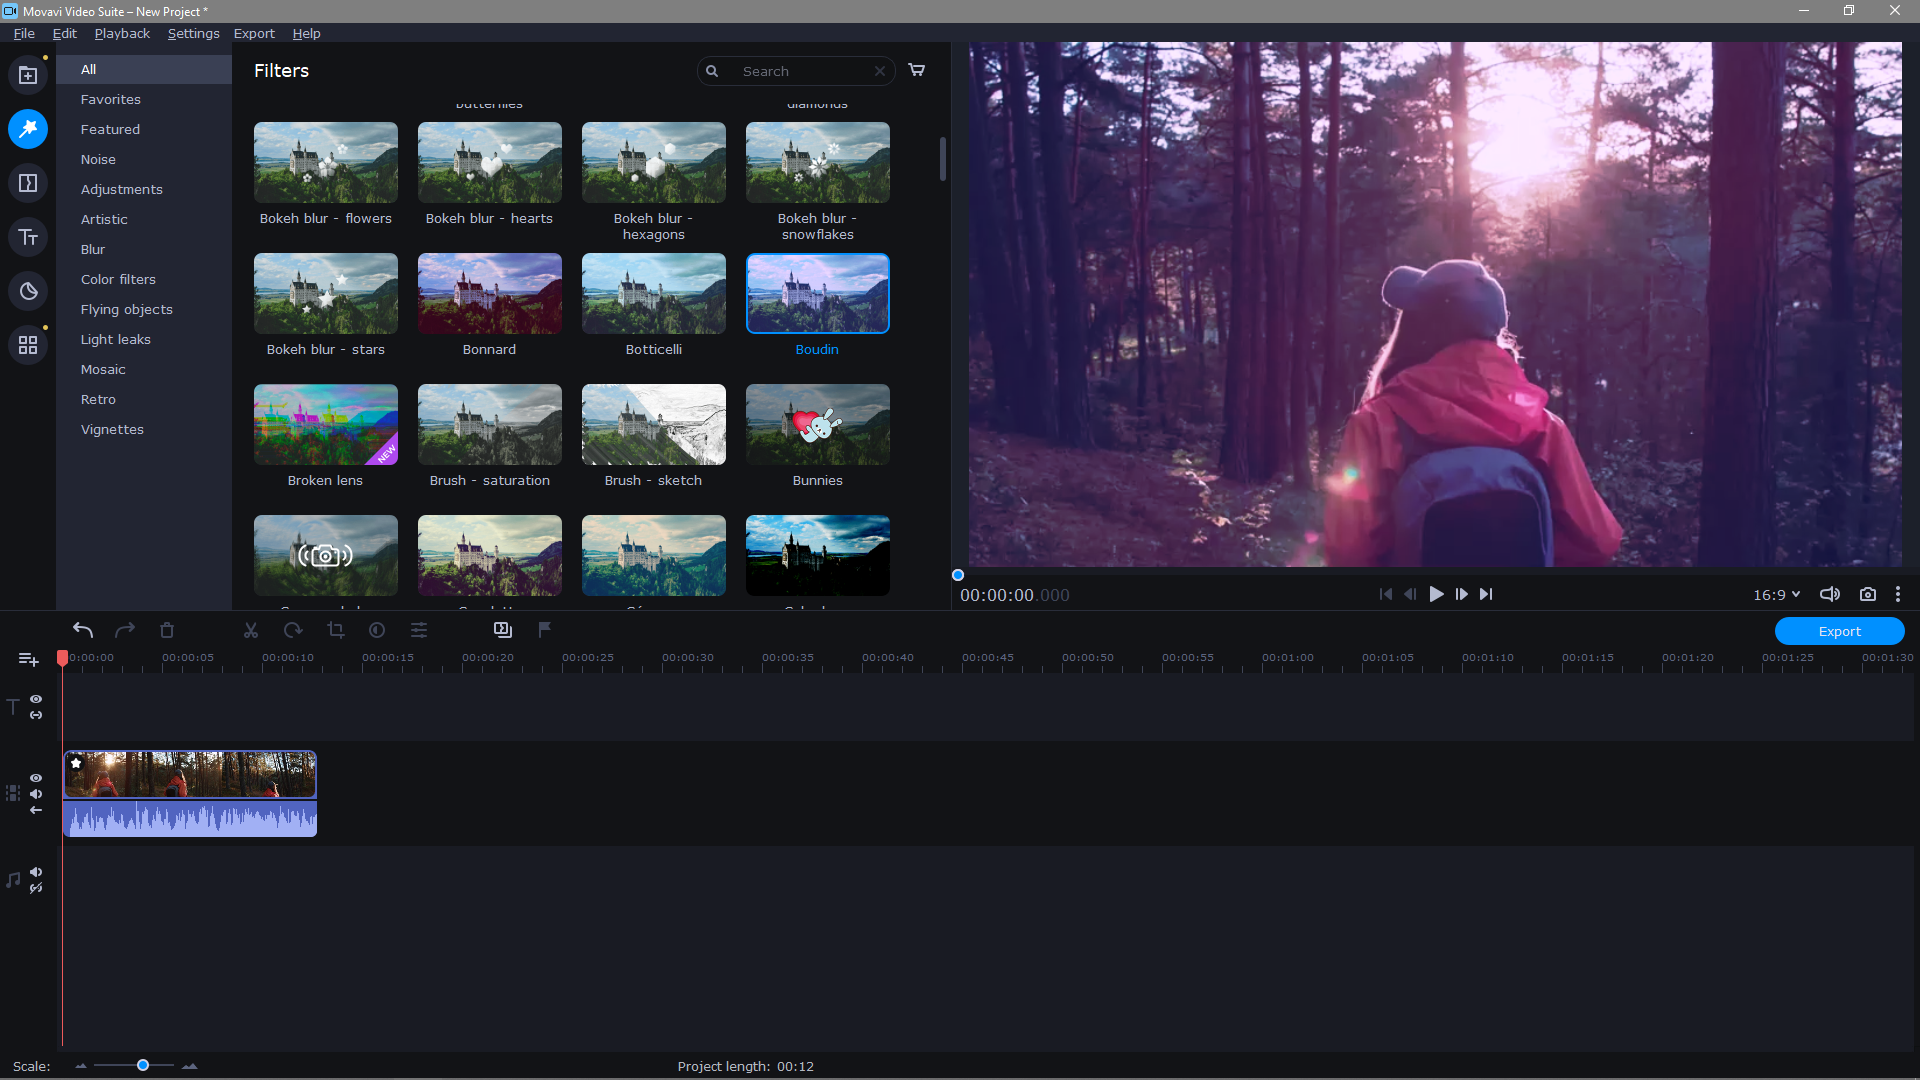 Movavi Video Editor Plus available filters